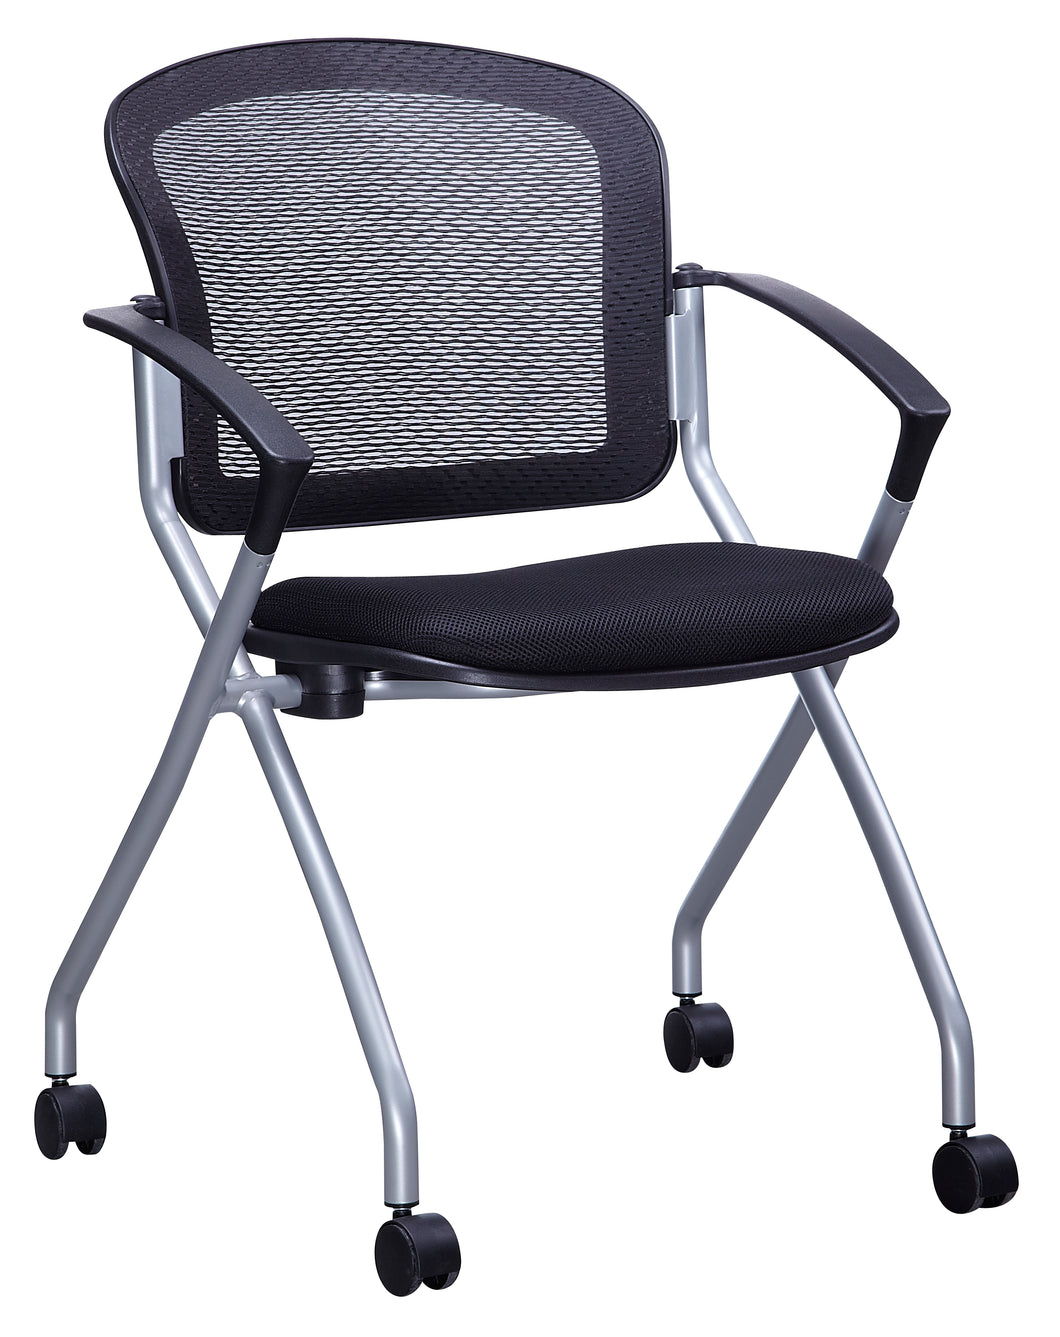 Black Mesh Nesting Chair (Seat Folds Up)